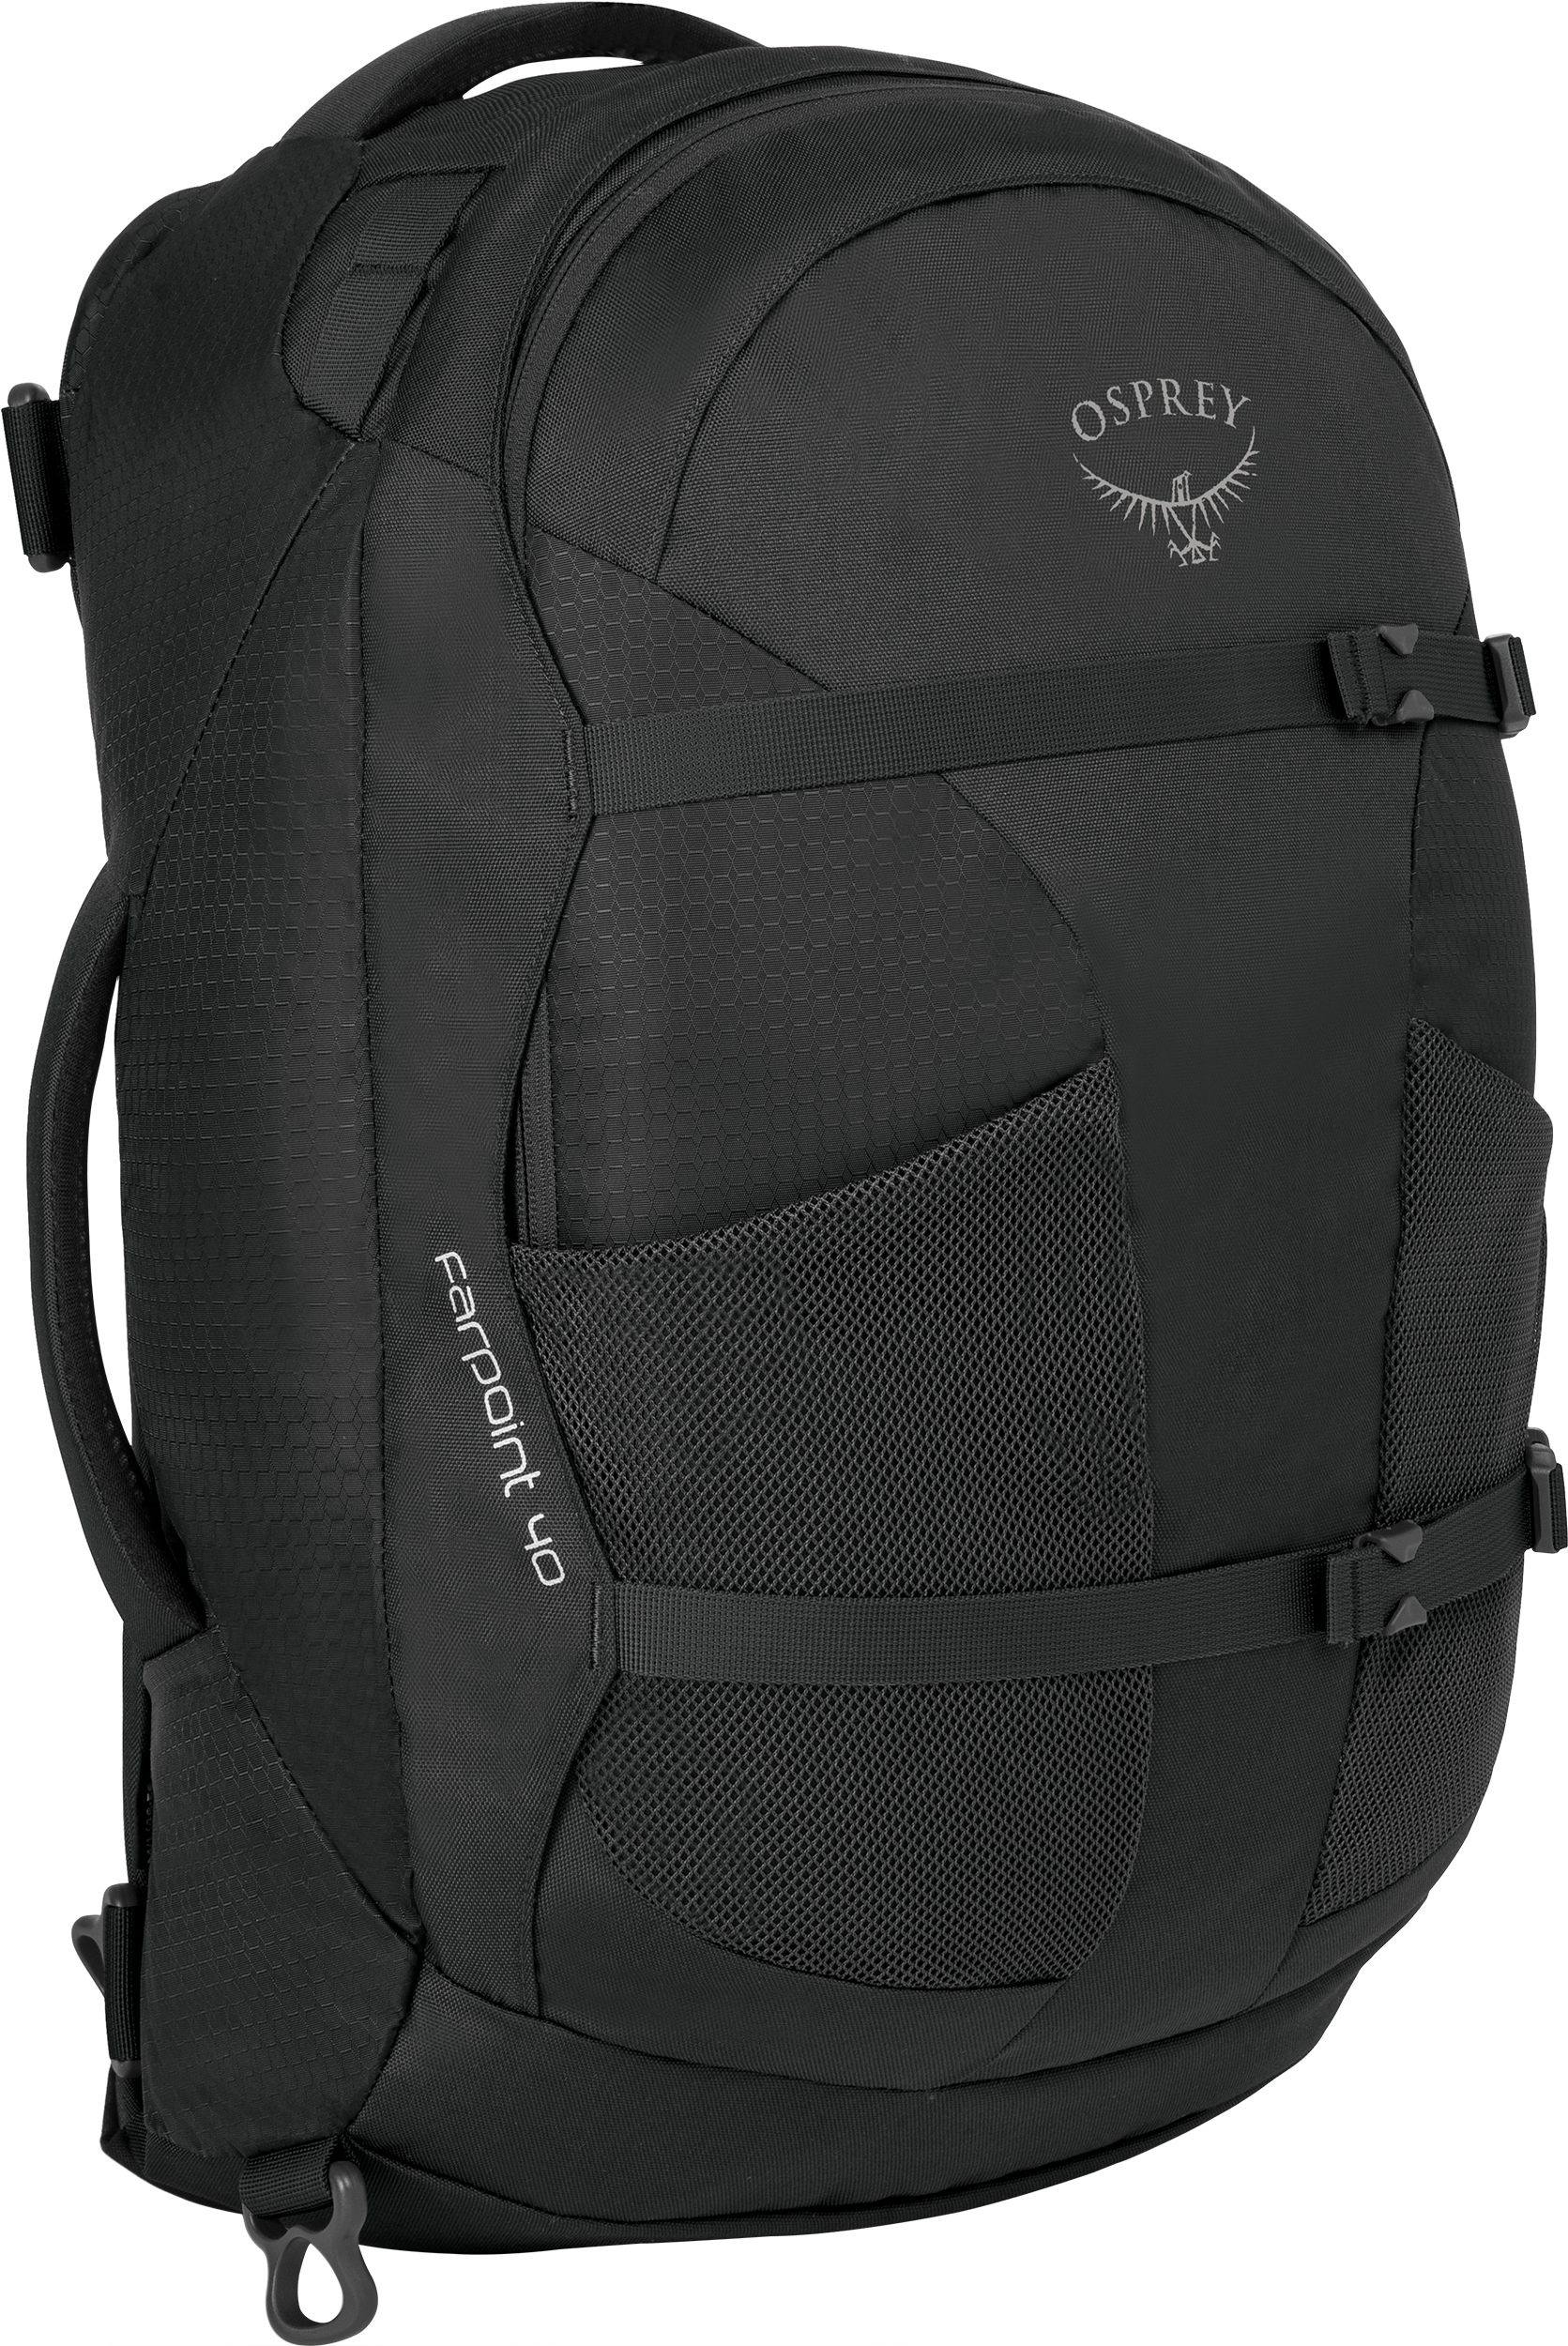 20e186428fcb Osprey Packs and bags